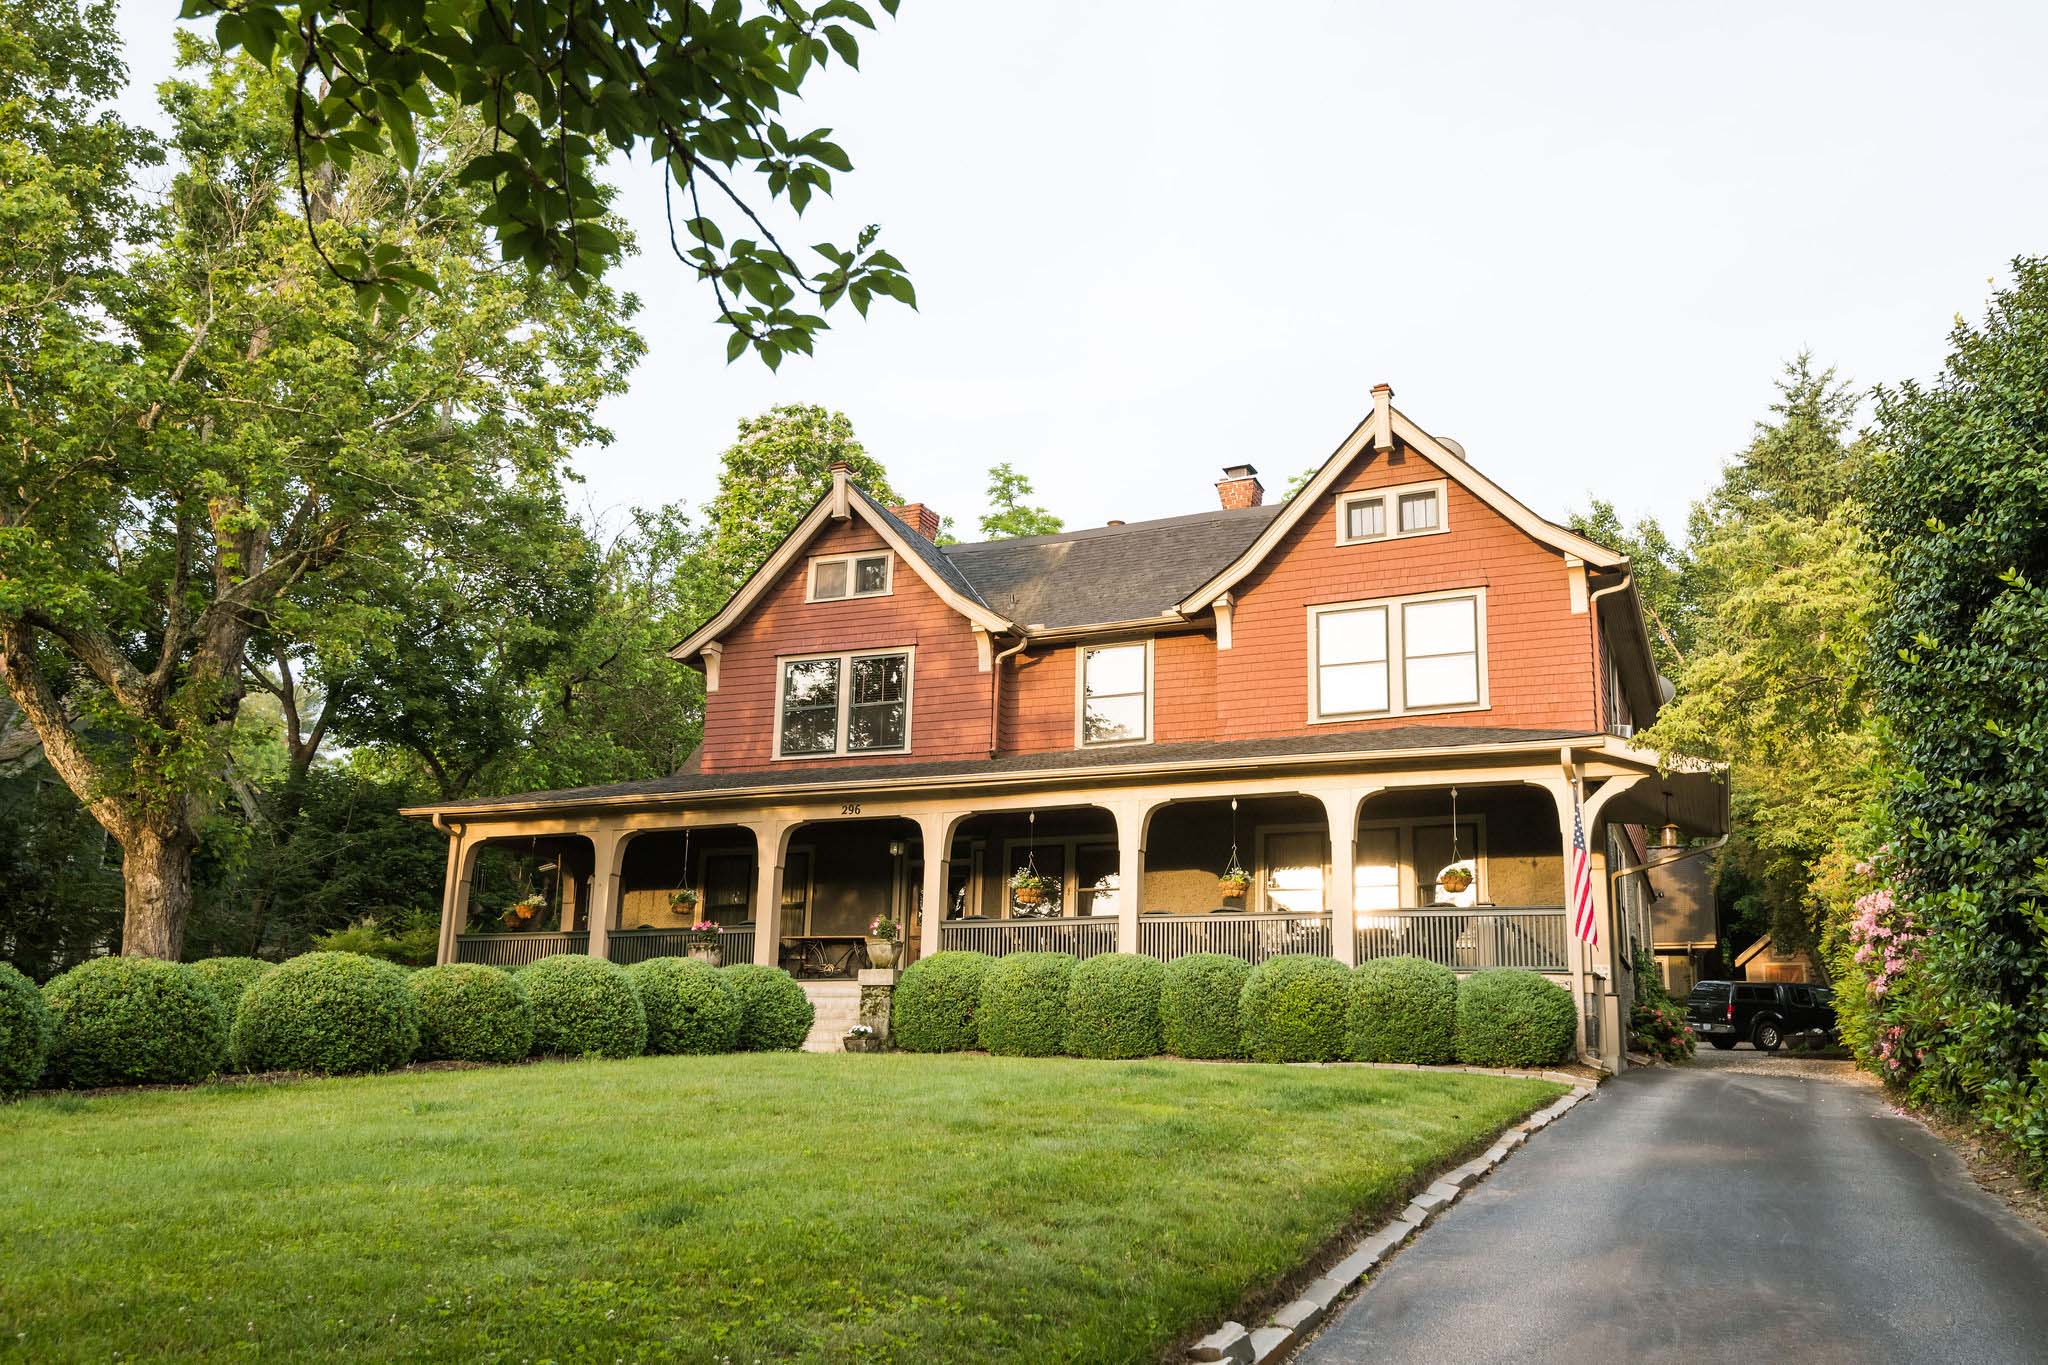 Why we love that our bed and breakfast is in historic Montford